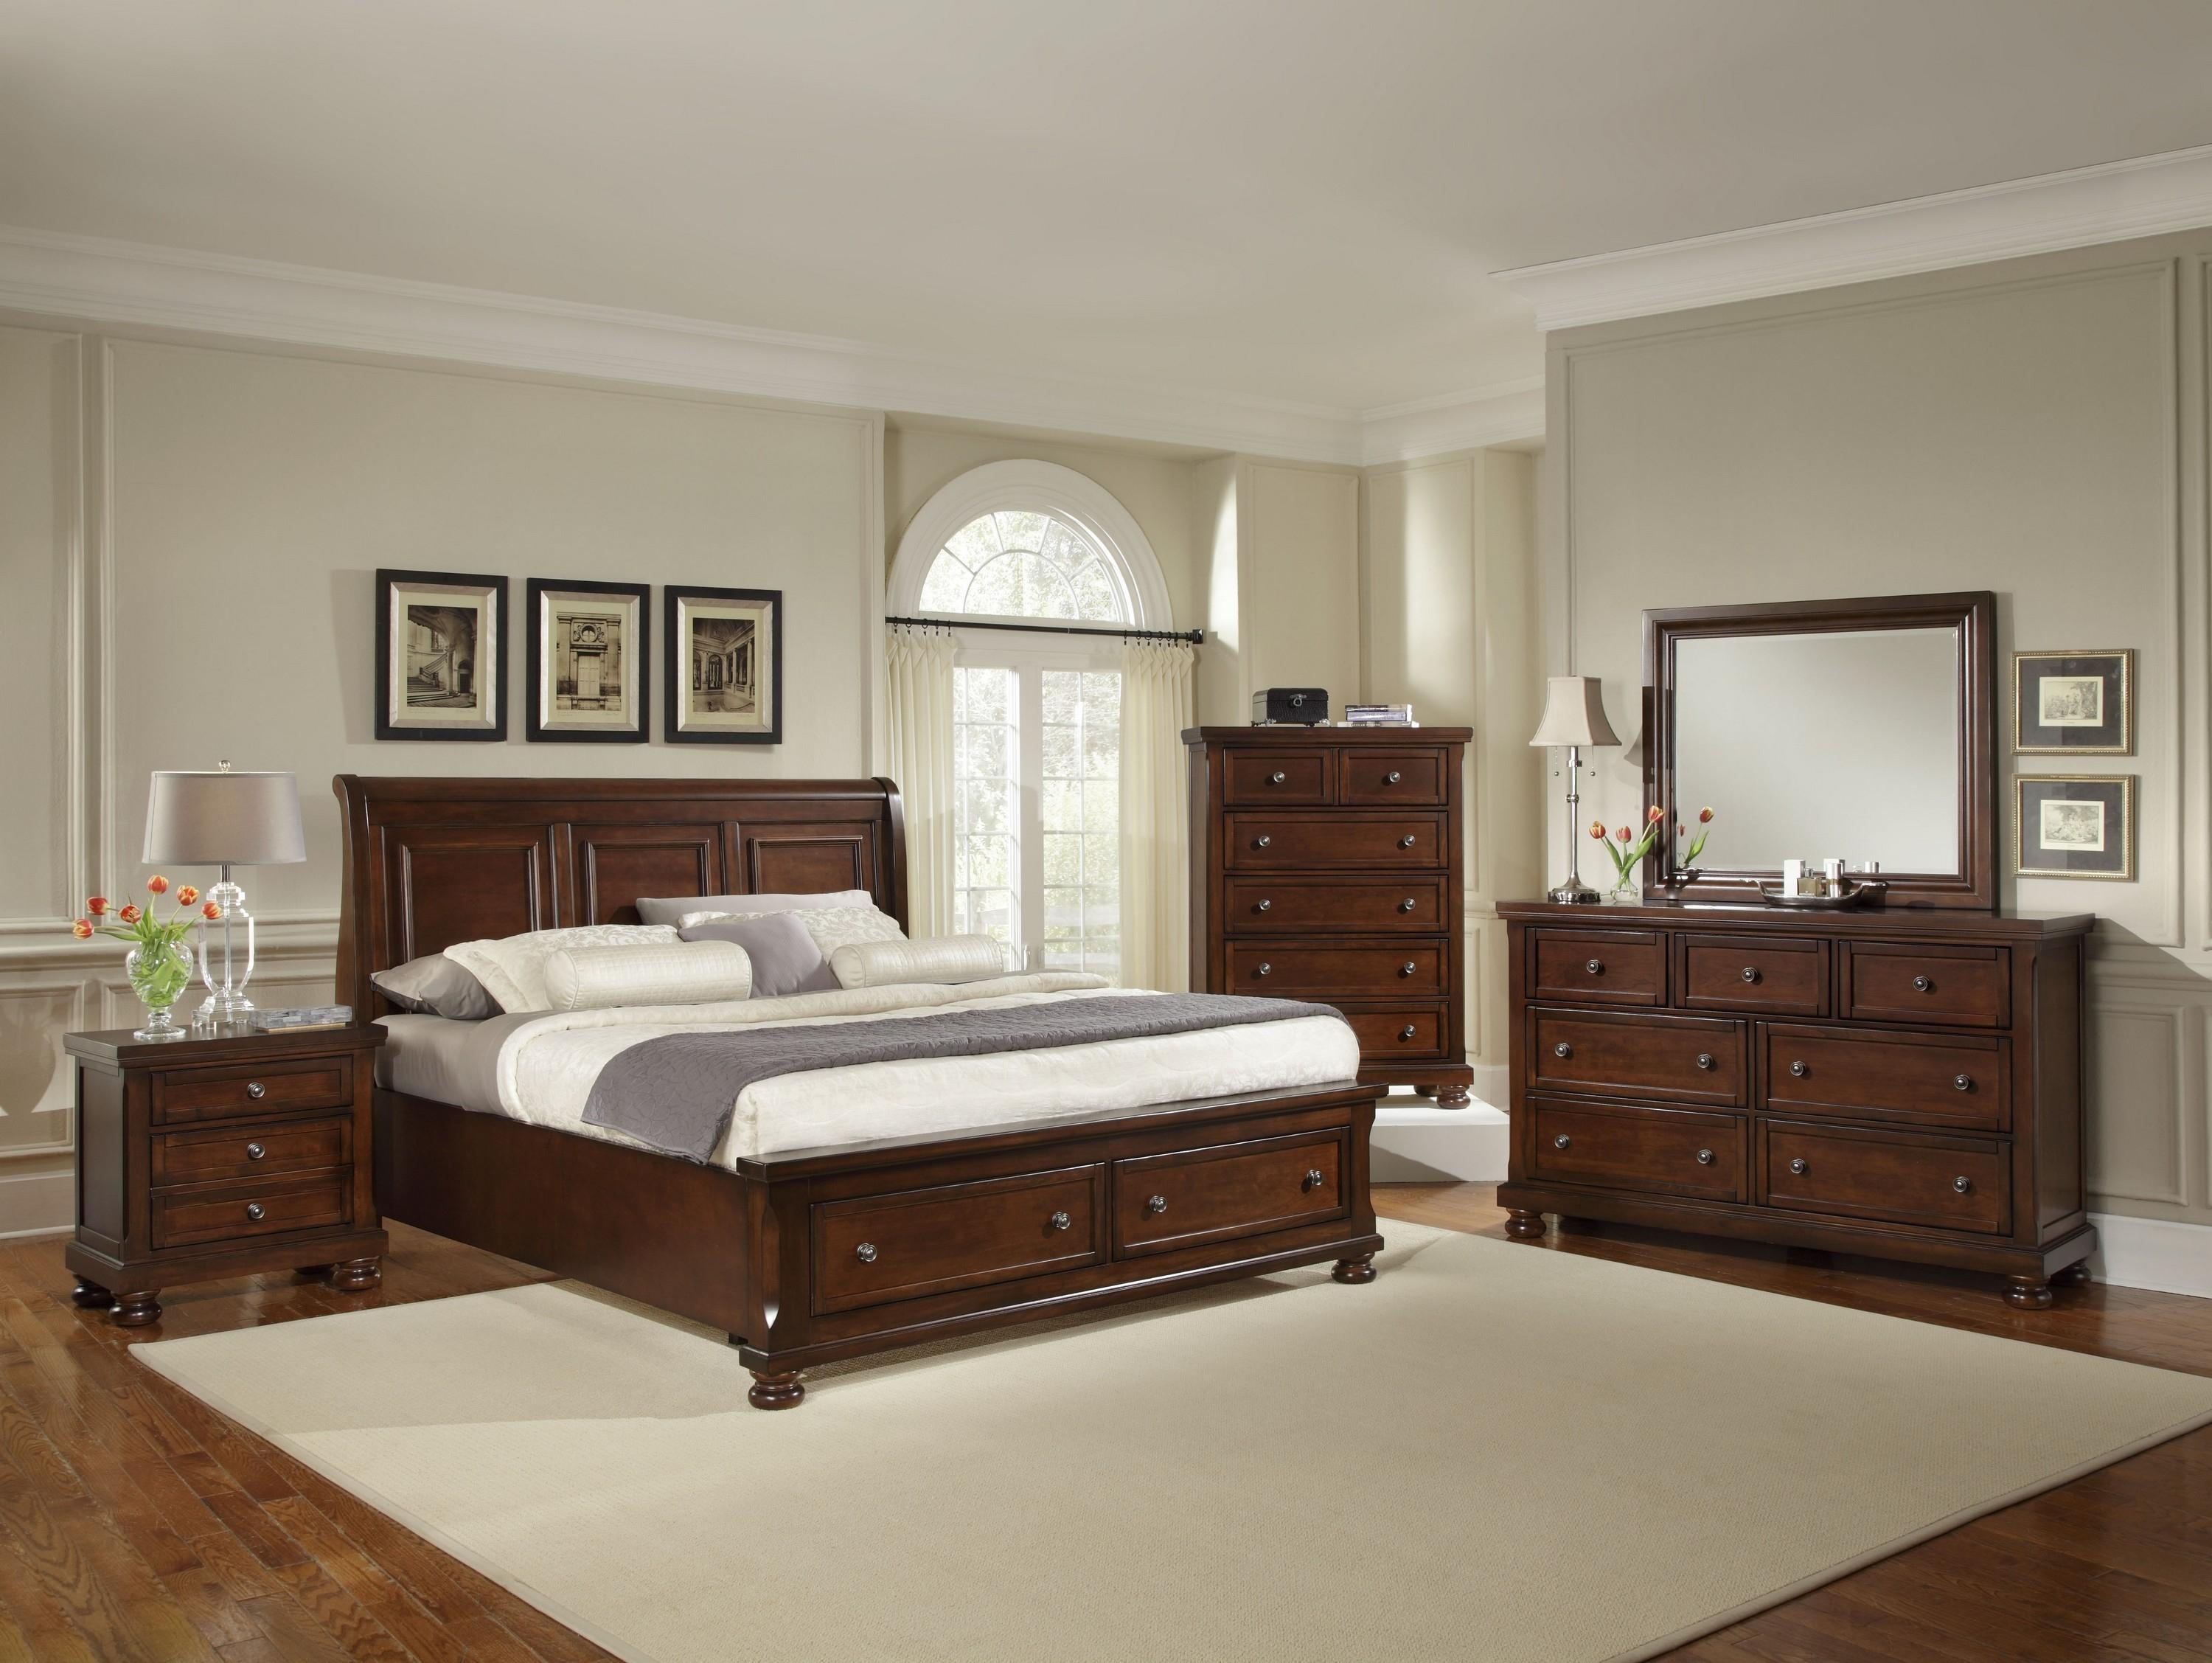 vaughan bassett reflections king storage bed dresser vaughan bassett reflections king storage bed with sleigh